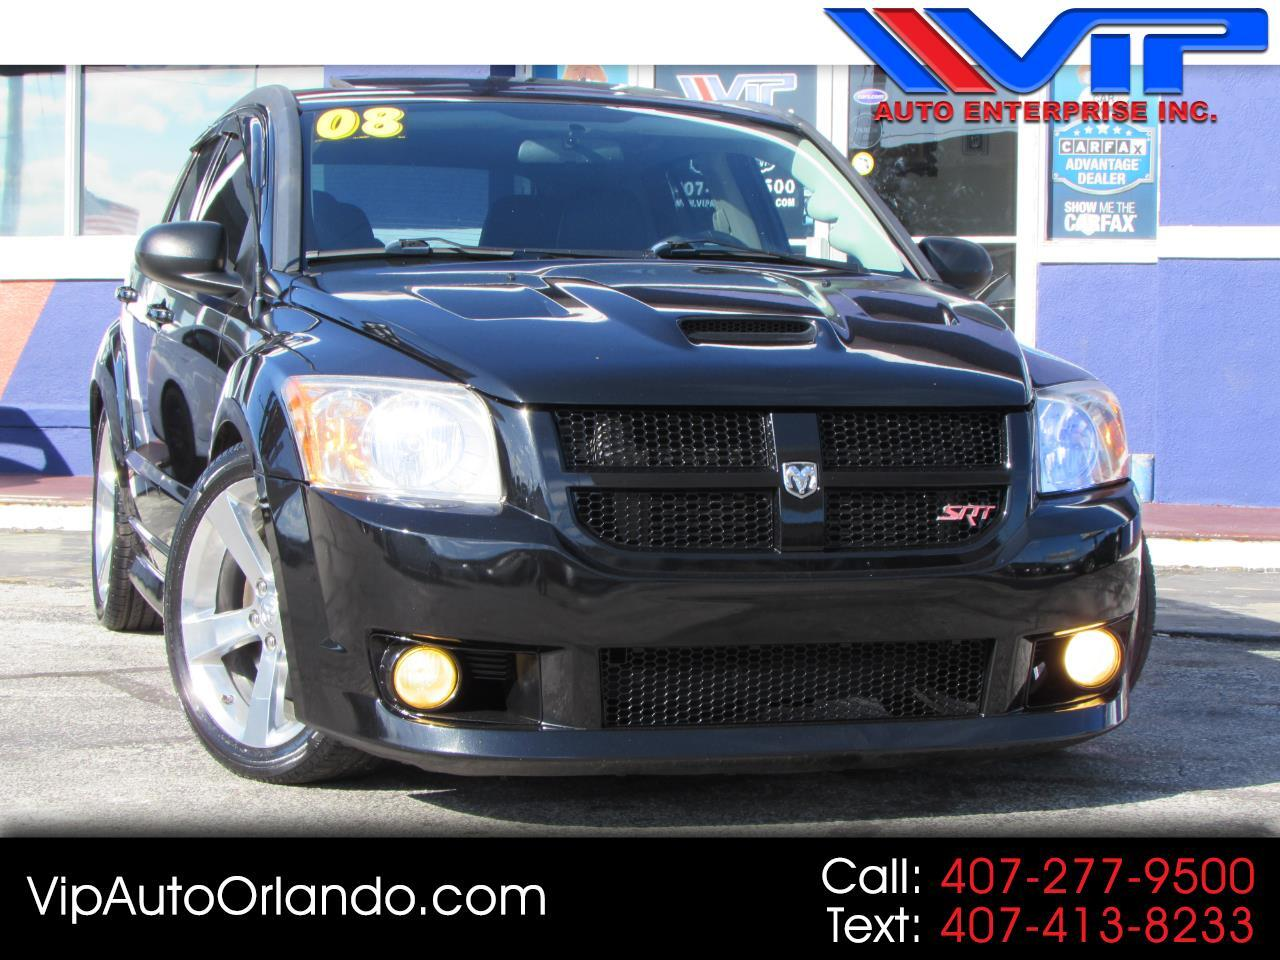 2008 Dodge Caliber 4dr HB SRT4 FWD